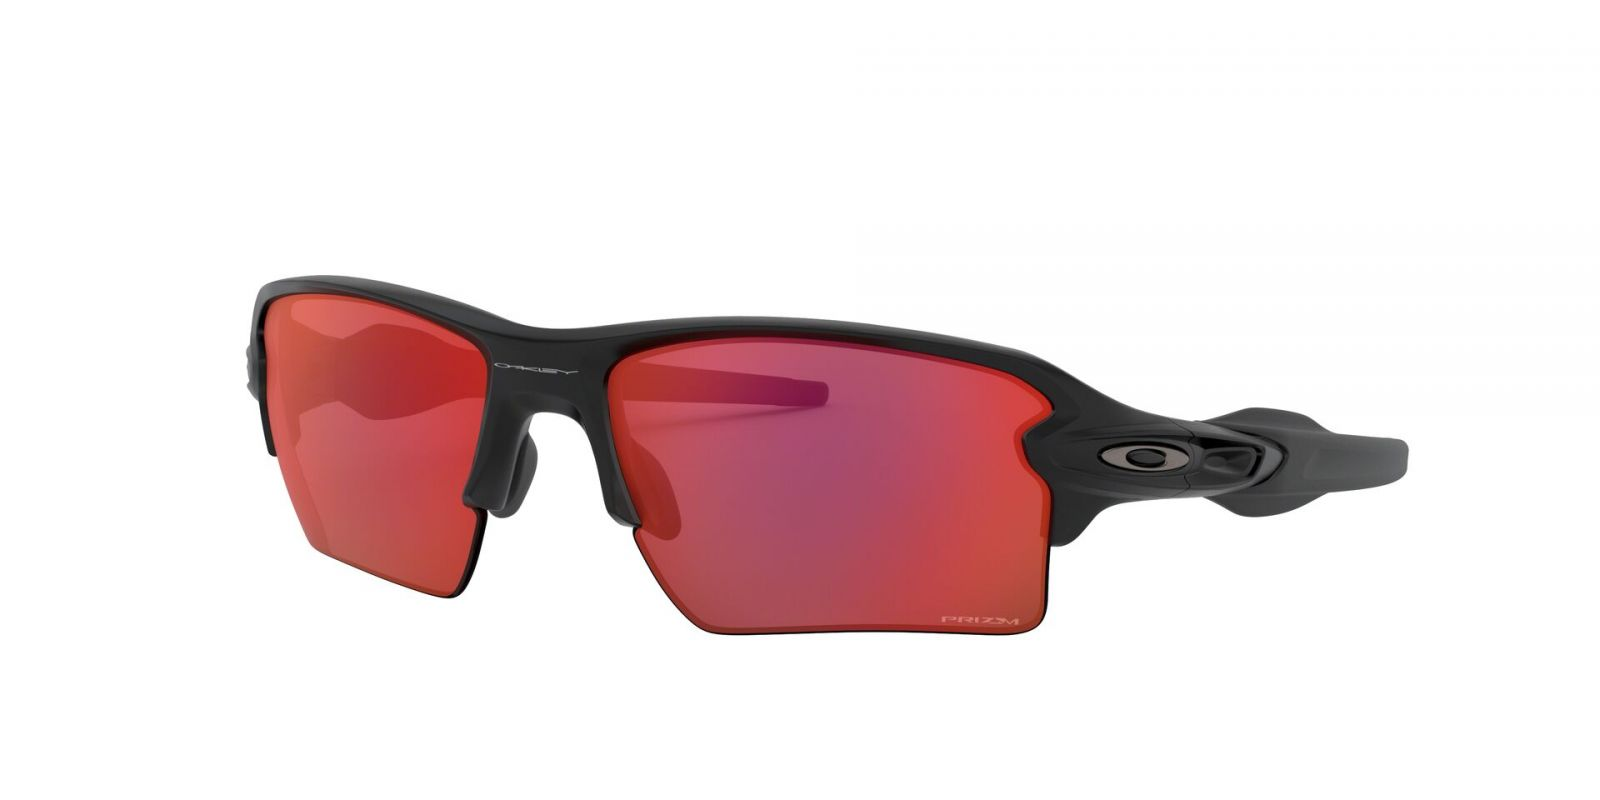 Brýle OAKLEY Flak 2.0 XL - Matte Black w/Prizm Trail Torch